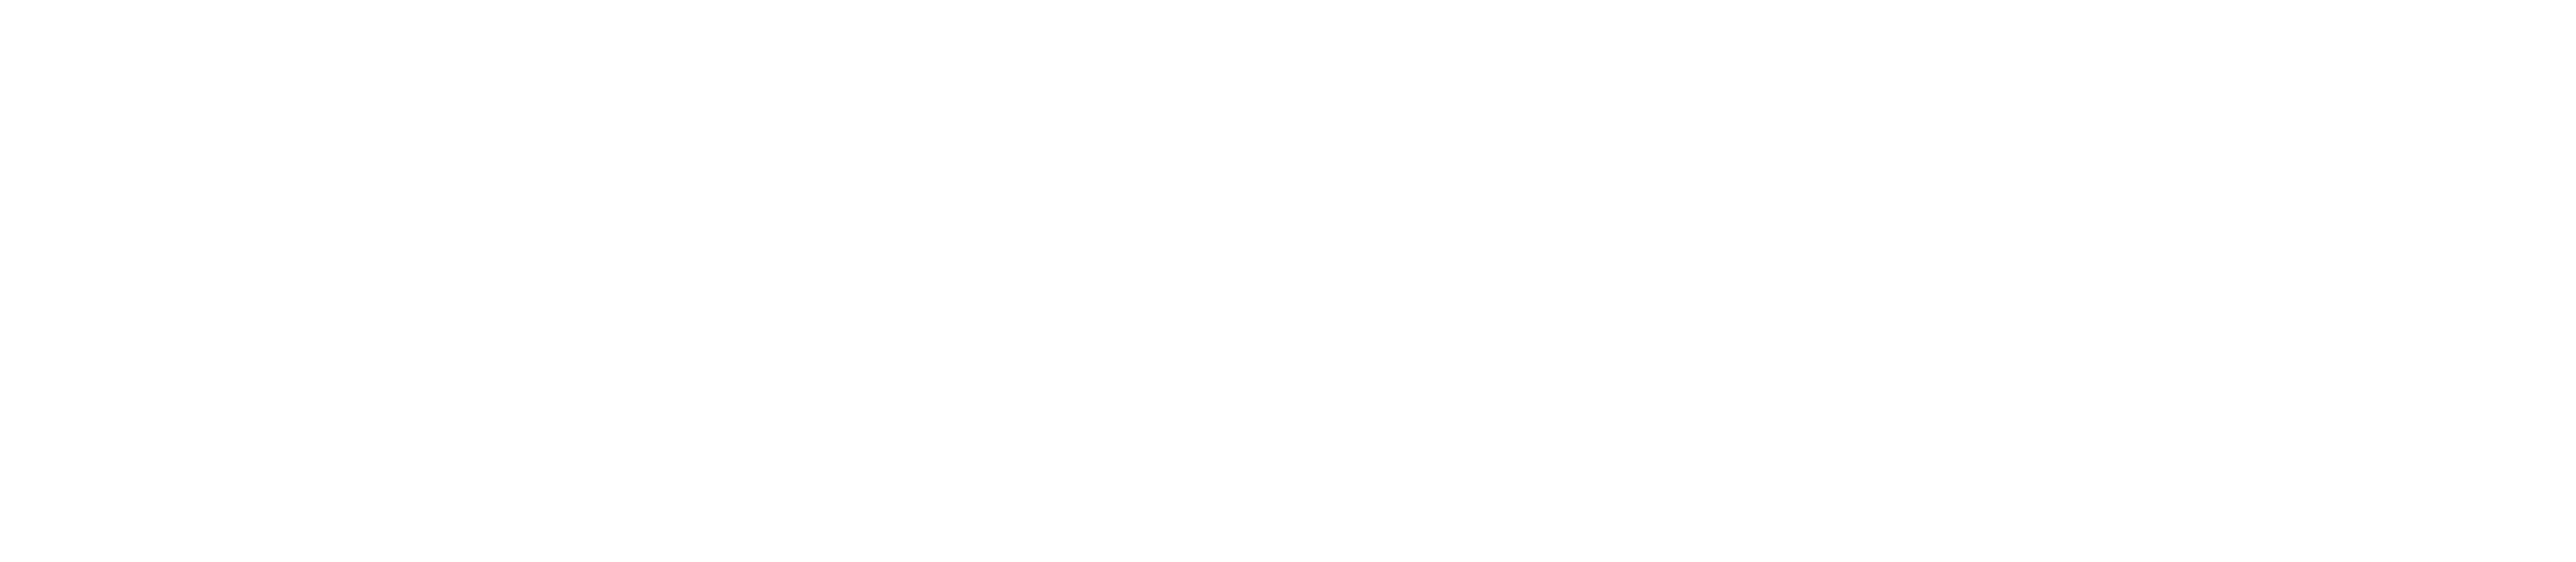 The Crownz Project